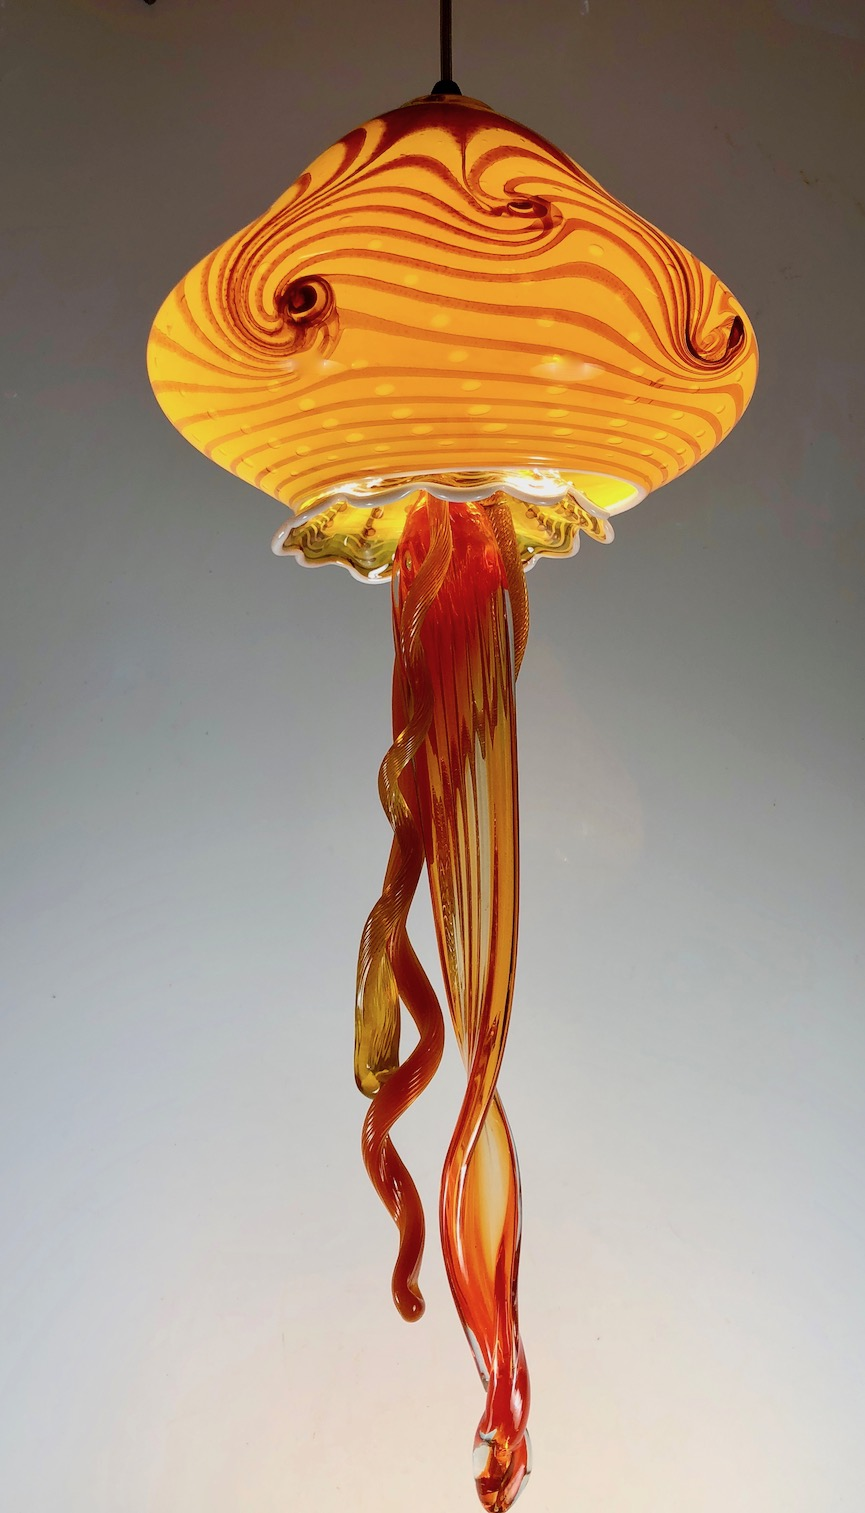 """10"""" wide x  25"""" tall,  includes LEDs and canopy ready to hang  110V   strini art glass."""